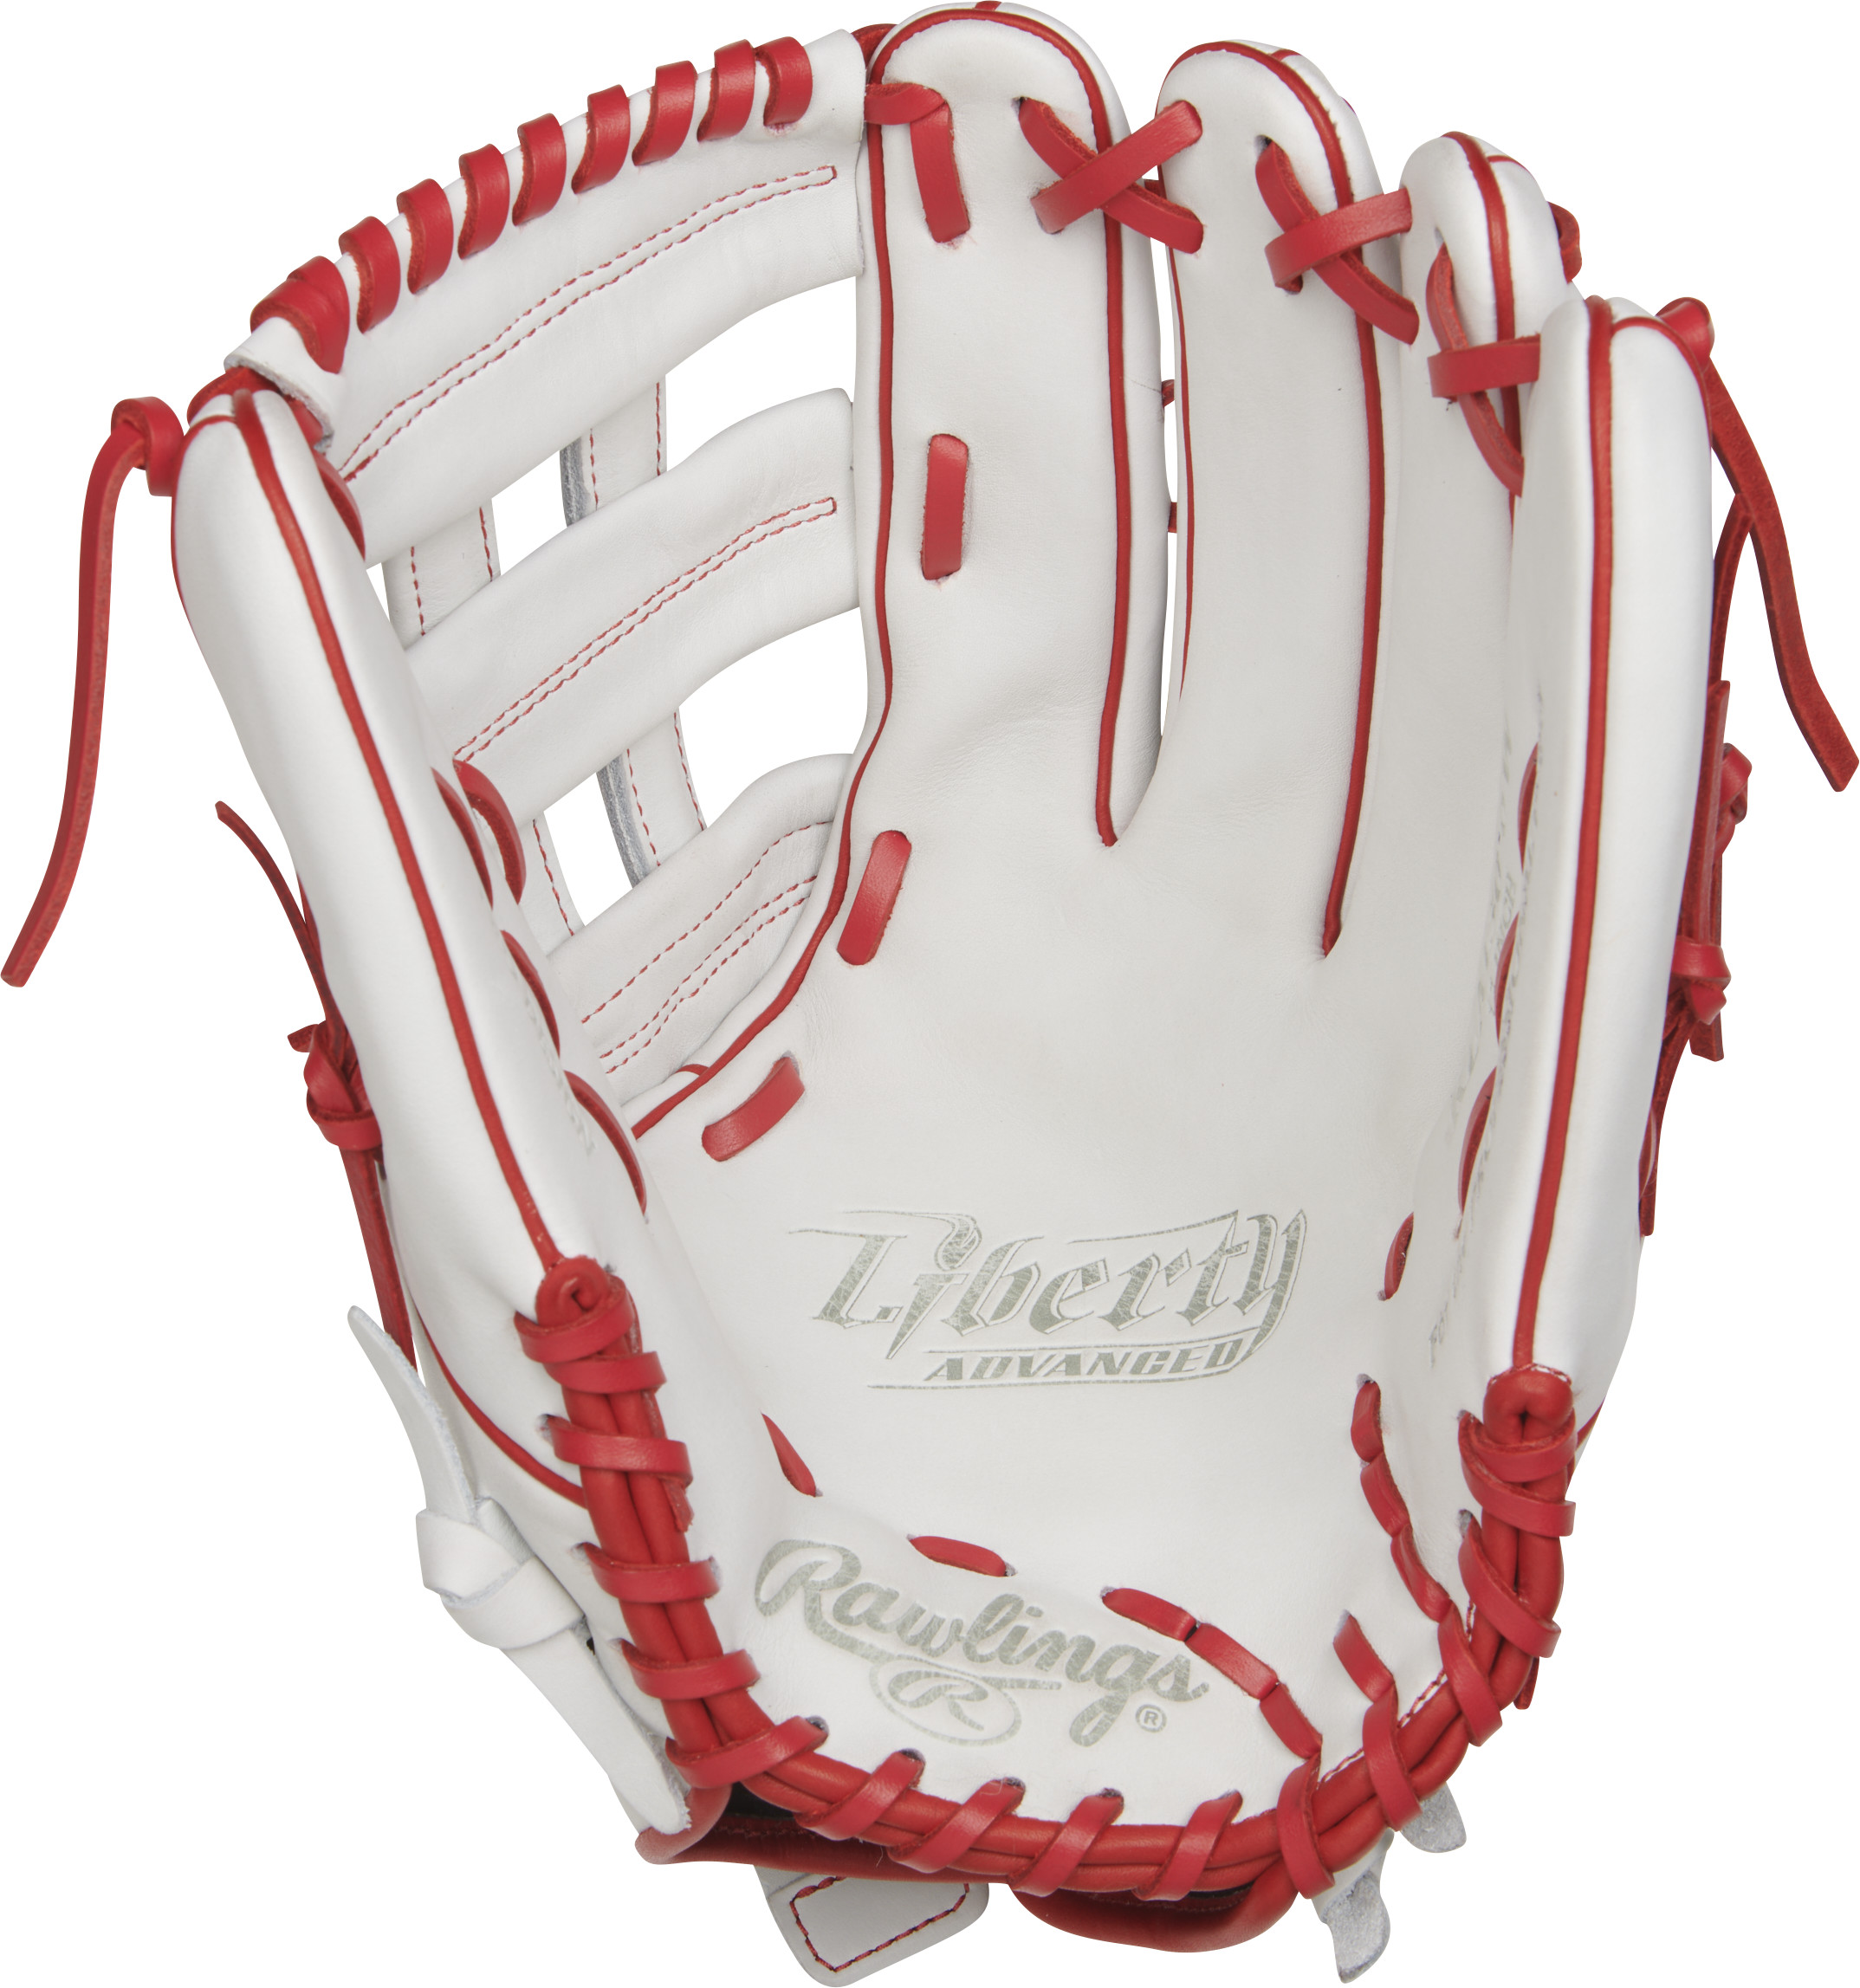 http://www.bestbatdeals.com/images/gloves/rawlings/RLA130-6W-1.jpg